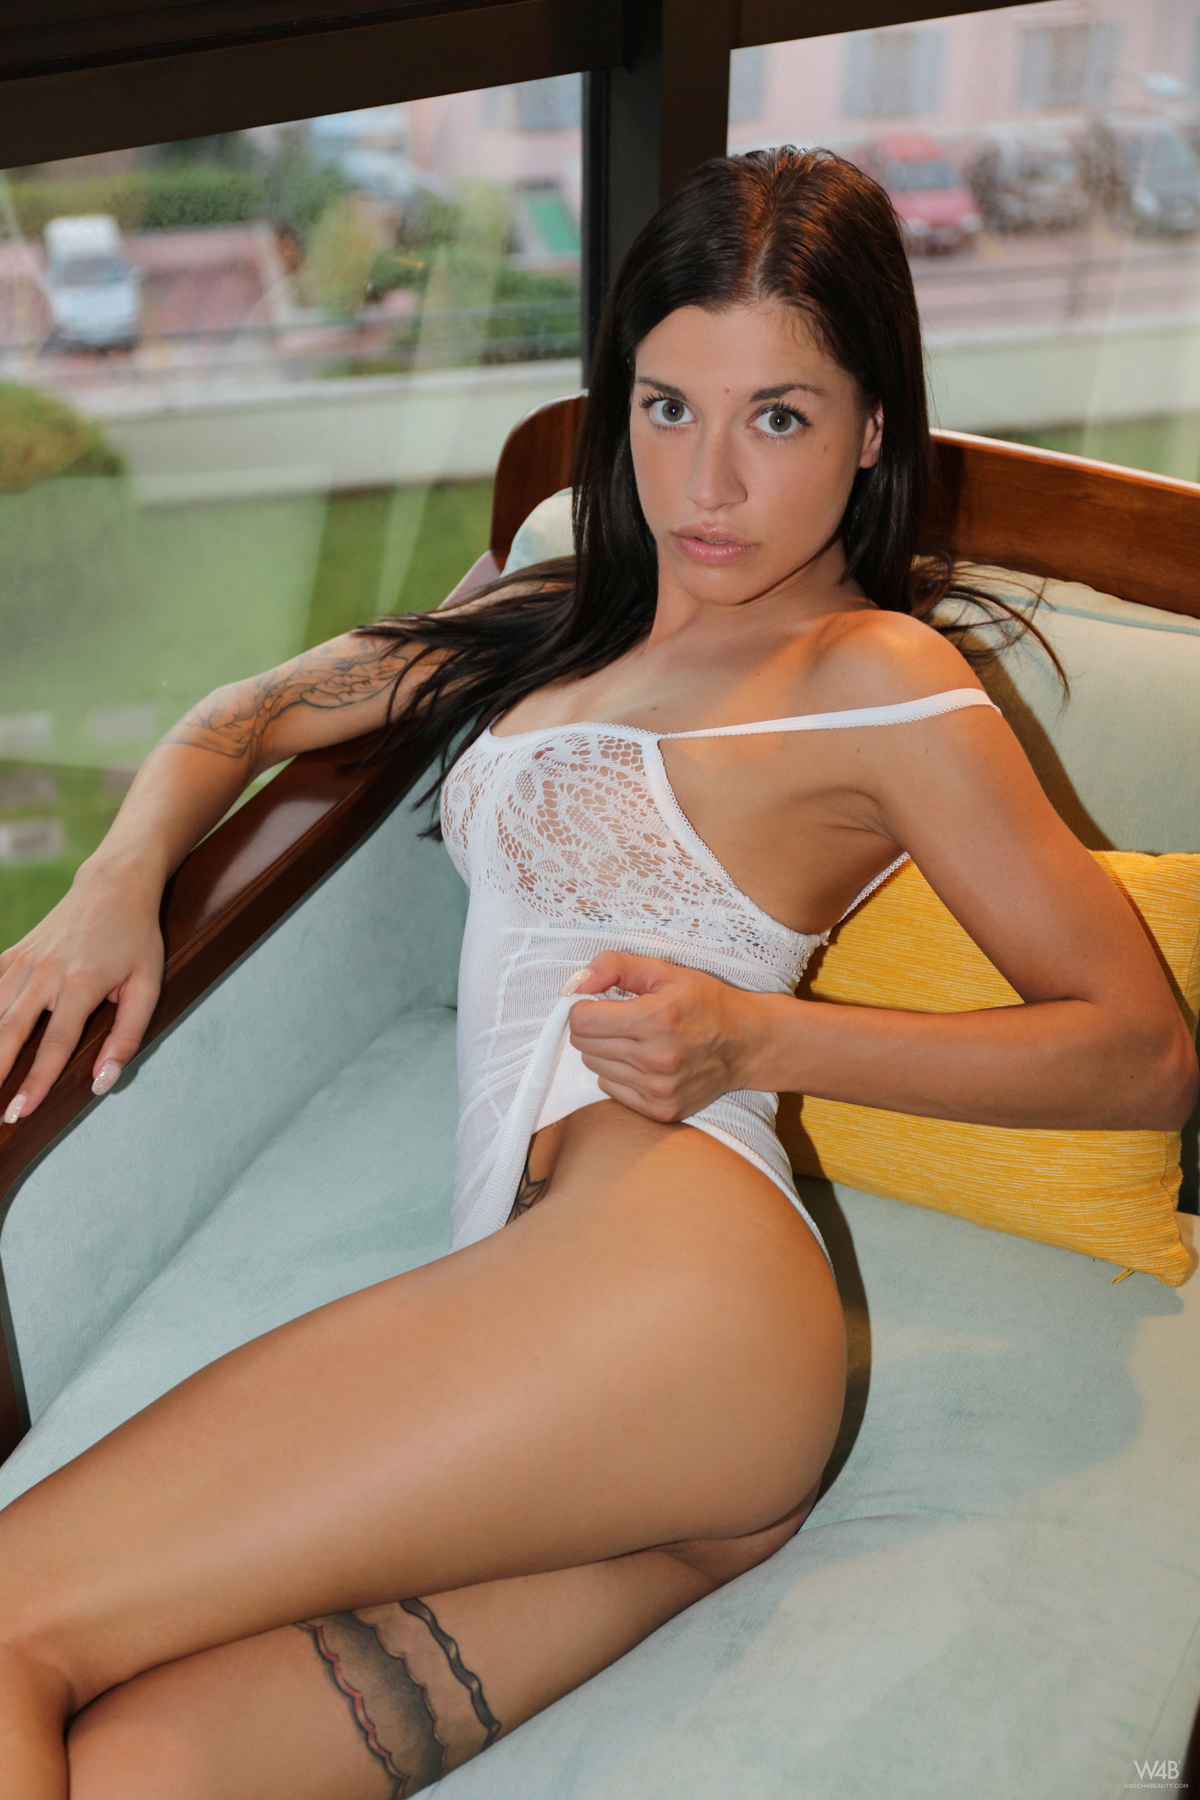 Tattooed Beauty Wanna Fuck Now - picture 05